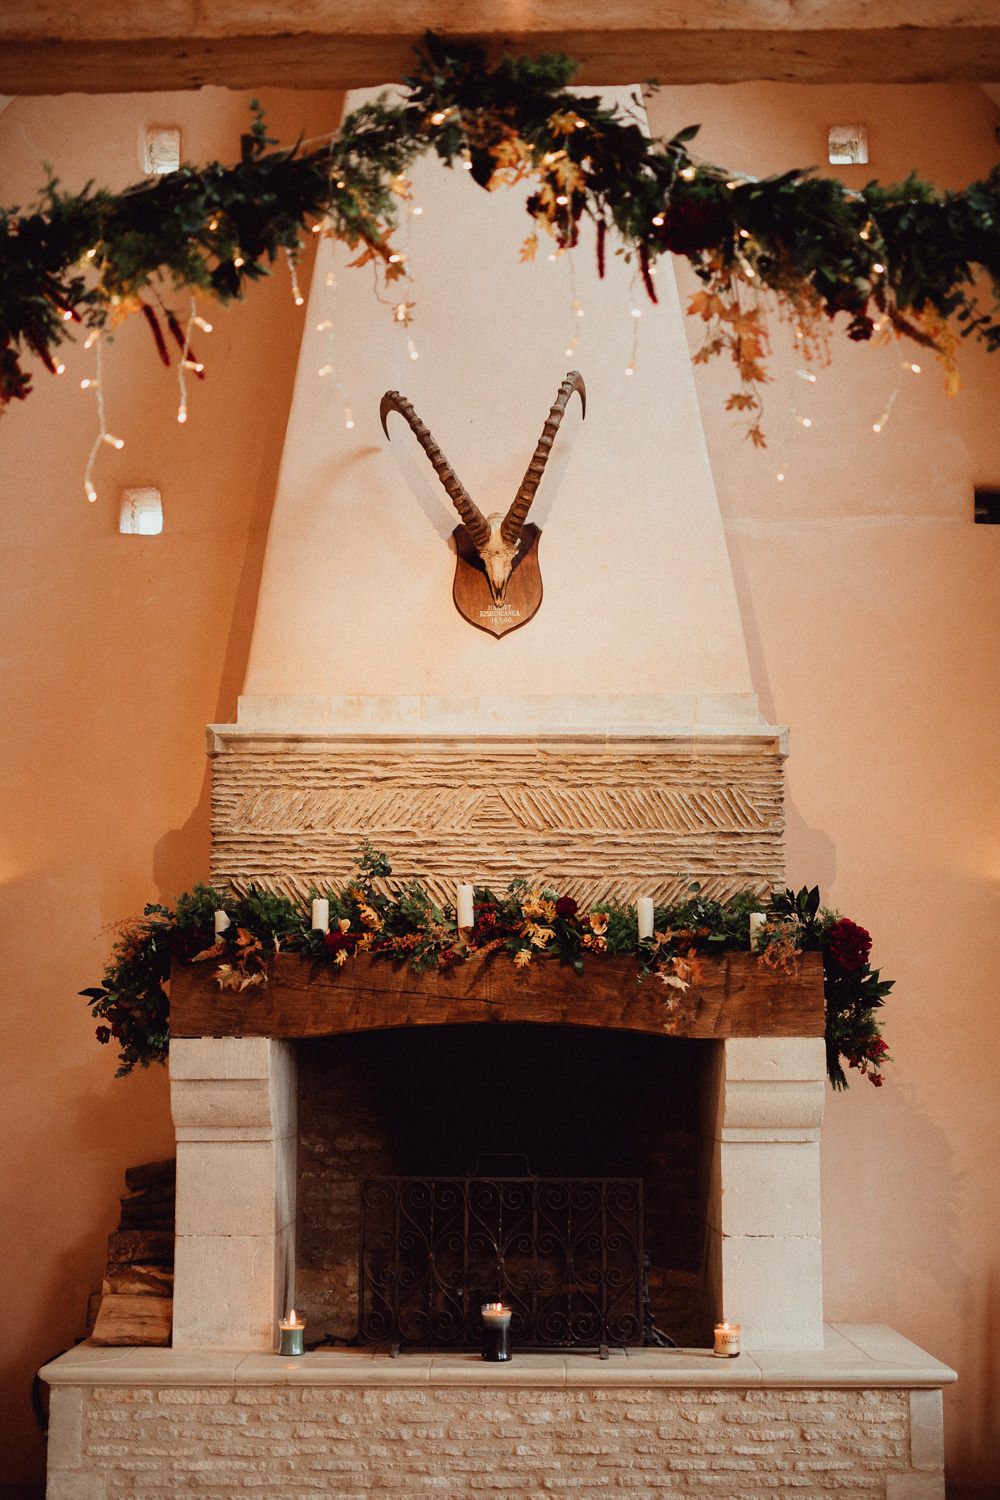 Fireplace Decor Ceremony Garlands Greenery Candles Fairylights Autumn Oxleaze Barn Wedding Emily and Steve Photography